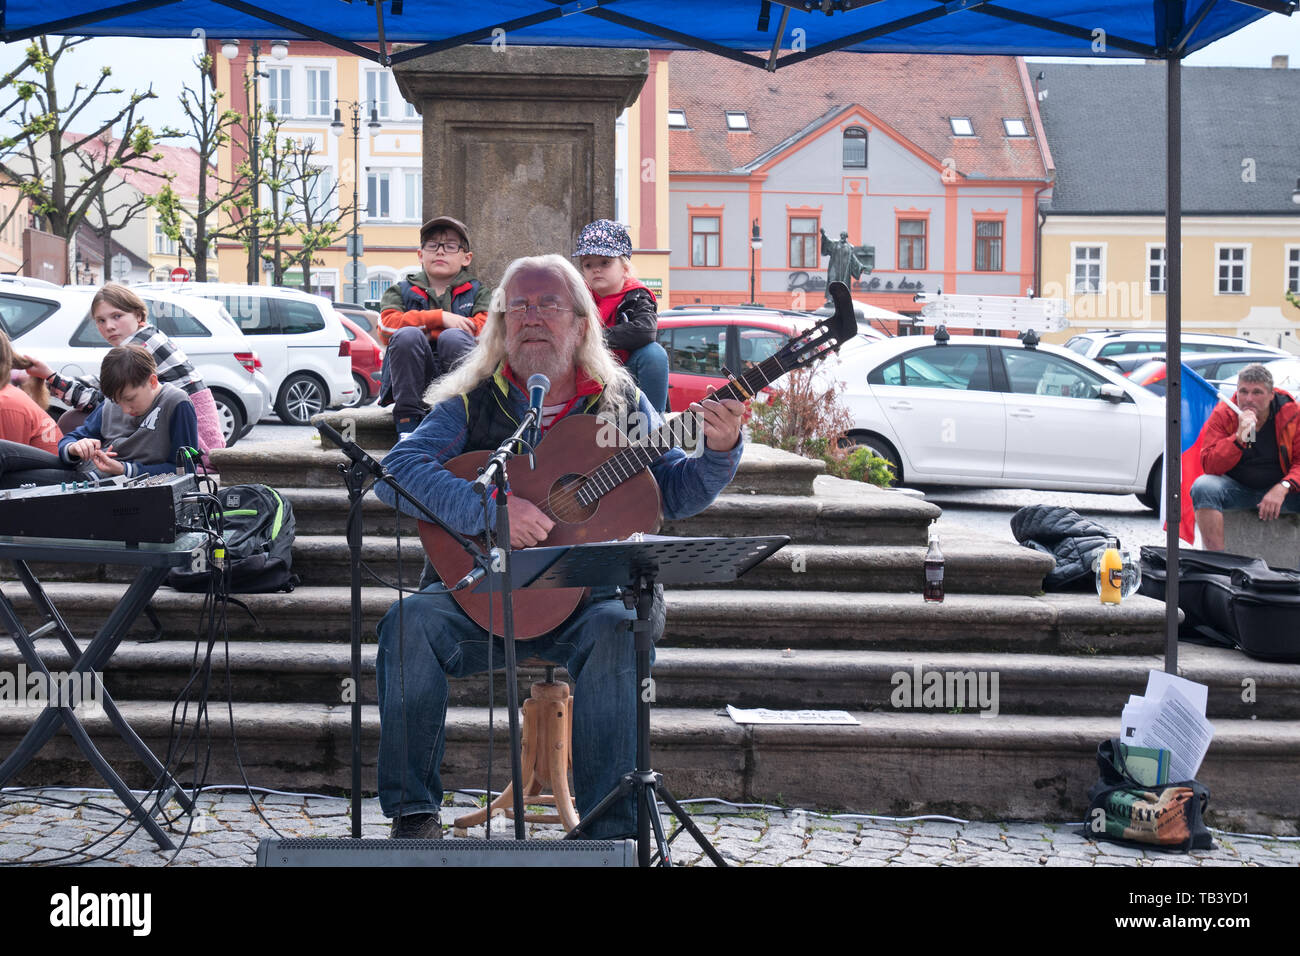 LOUNY, CZECH REPUBLIC - MAY 28, 2019: 'Mame toho dost'  Protest against the Prime Minister Andrej Babis and Minister of Justice Marie Benesova. - Stock Image